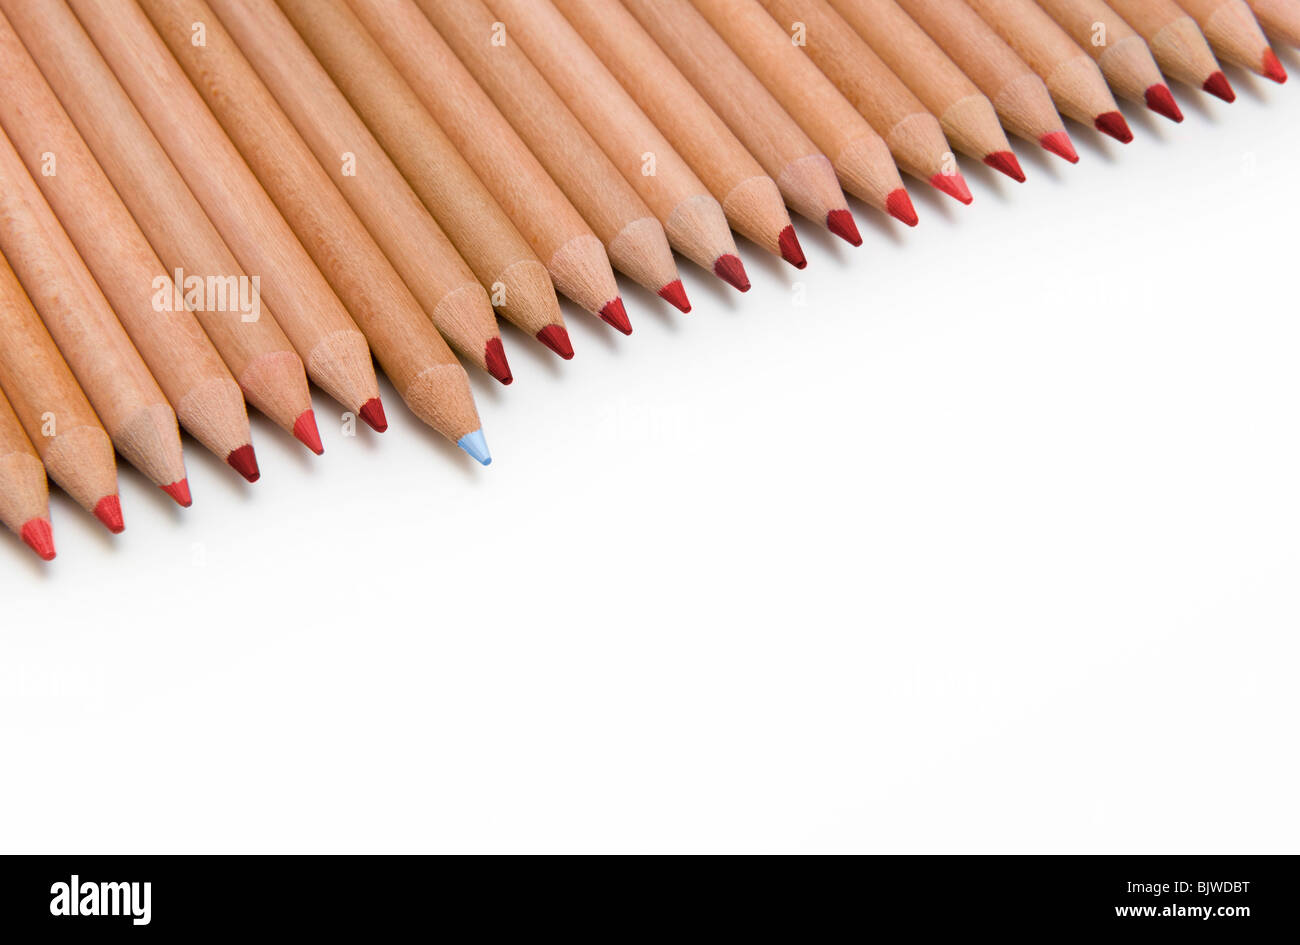 Line of Red Colouring Pencils with One Blue Pencil Sticking Out, on White Background - Stock Image